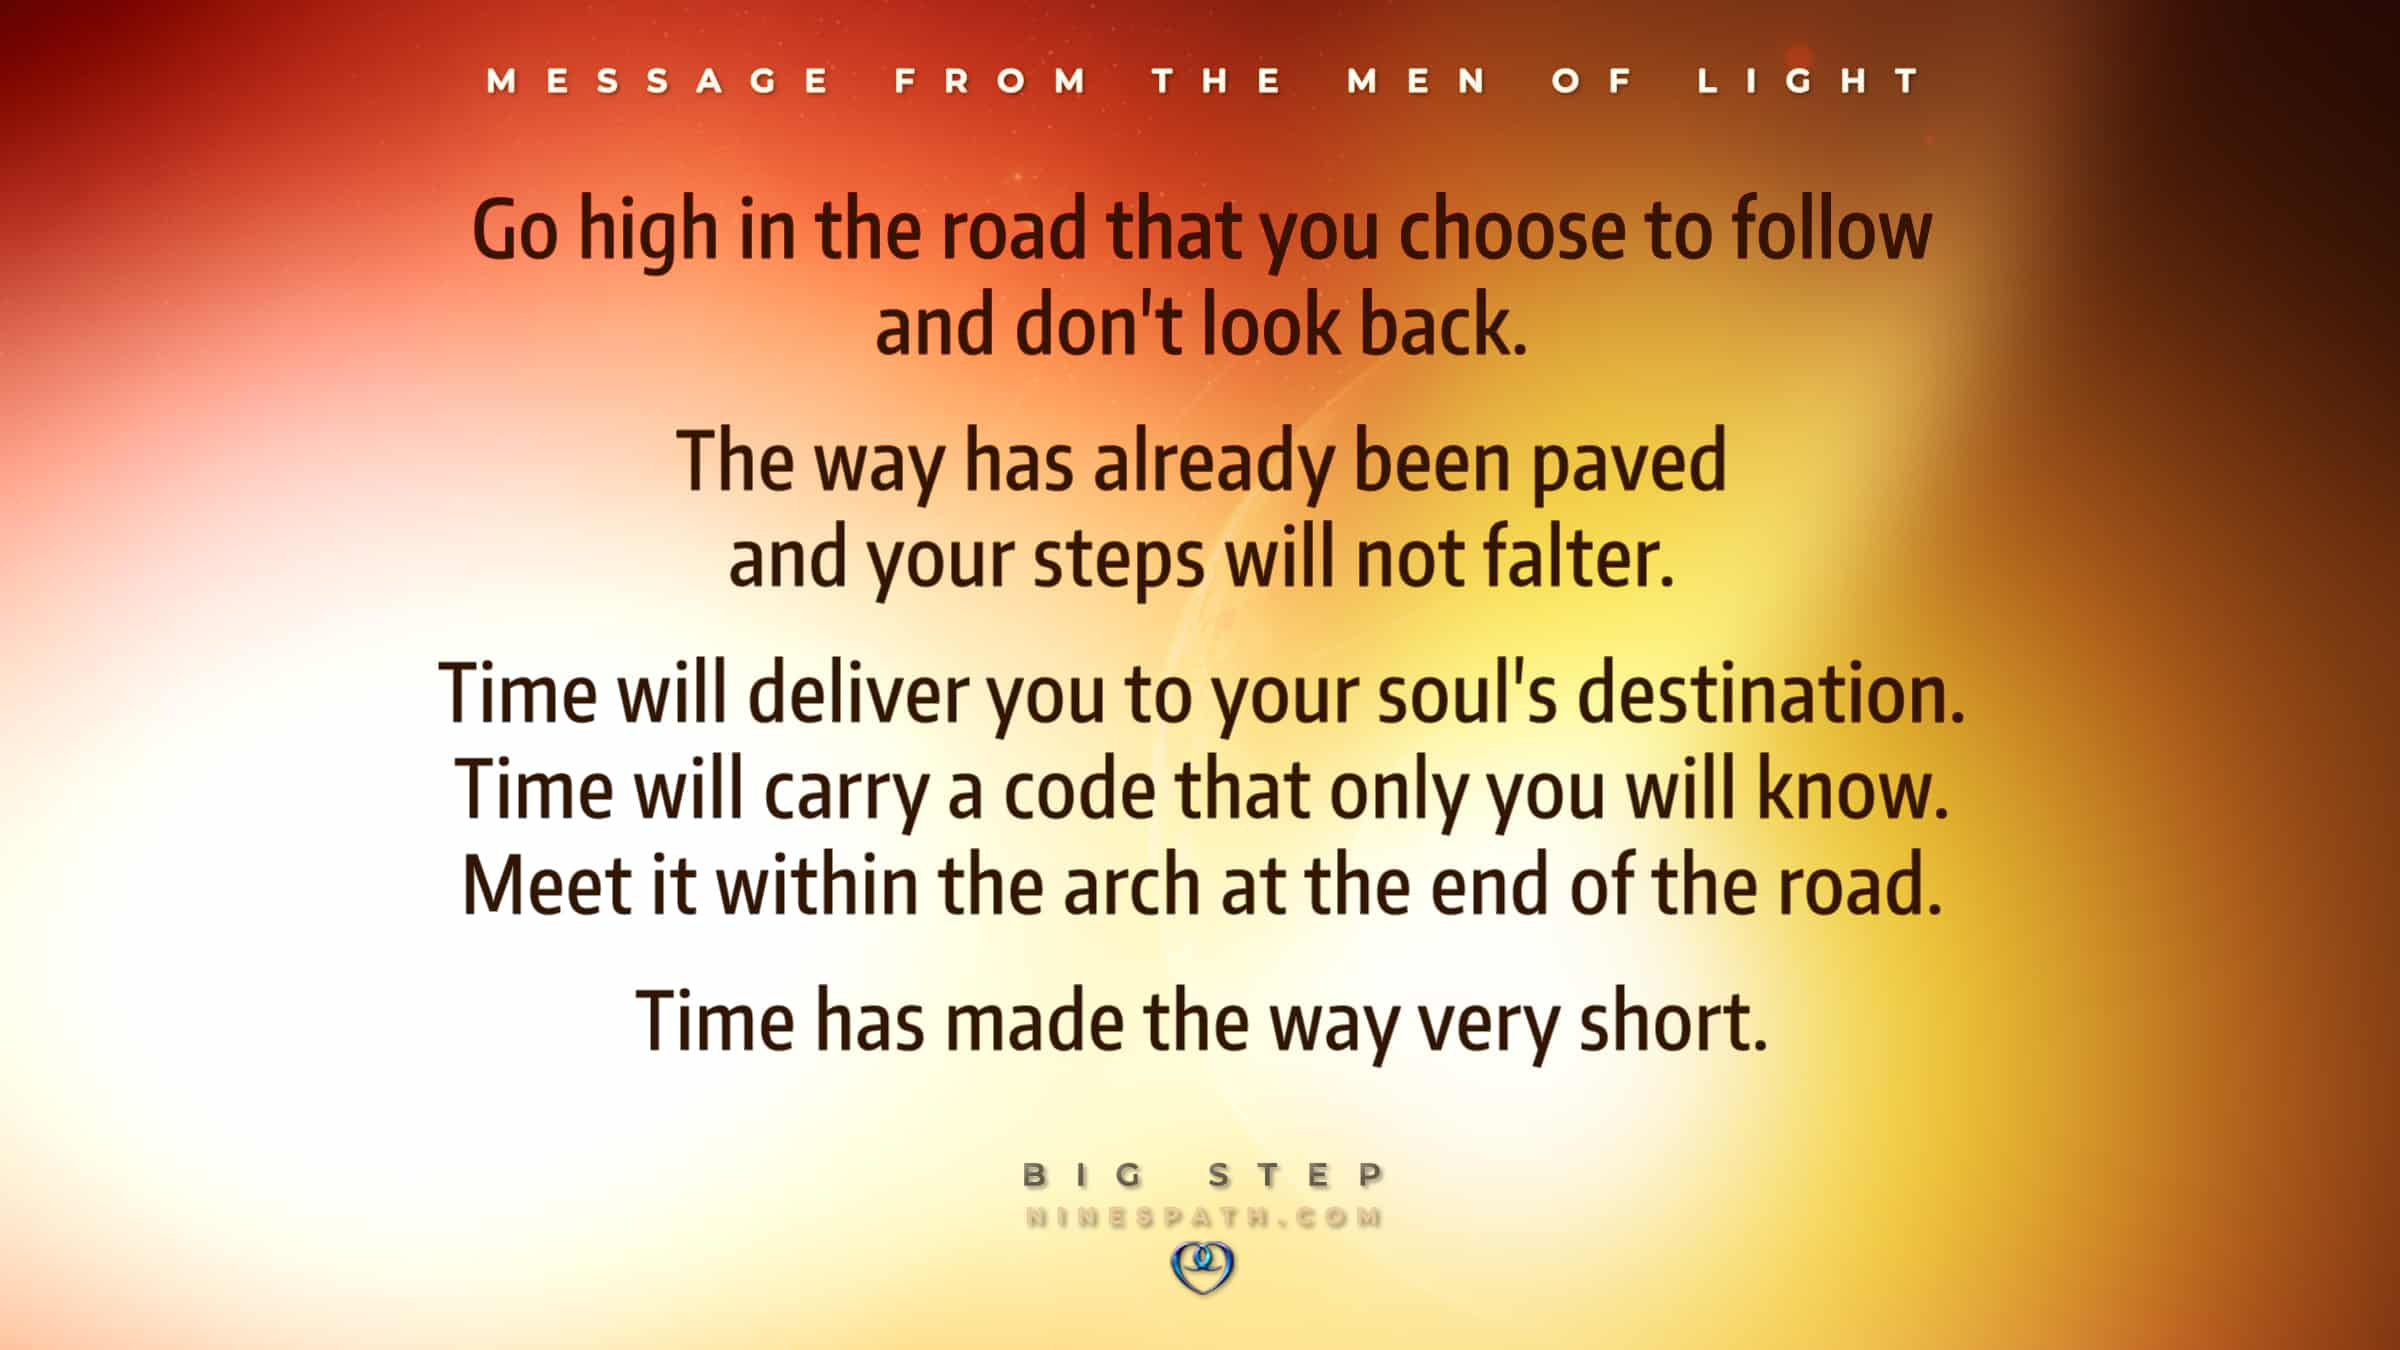 Nine's Path Men of Light